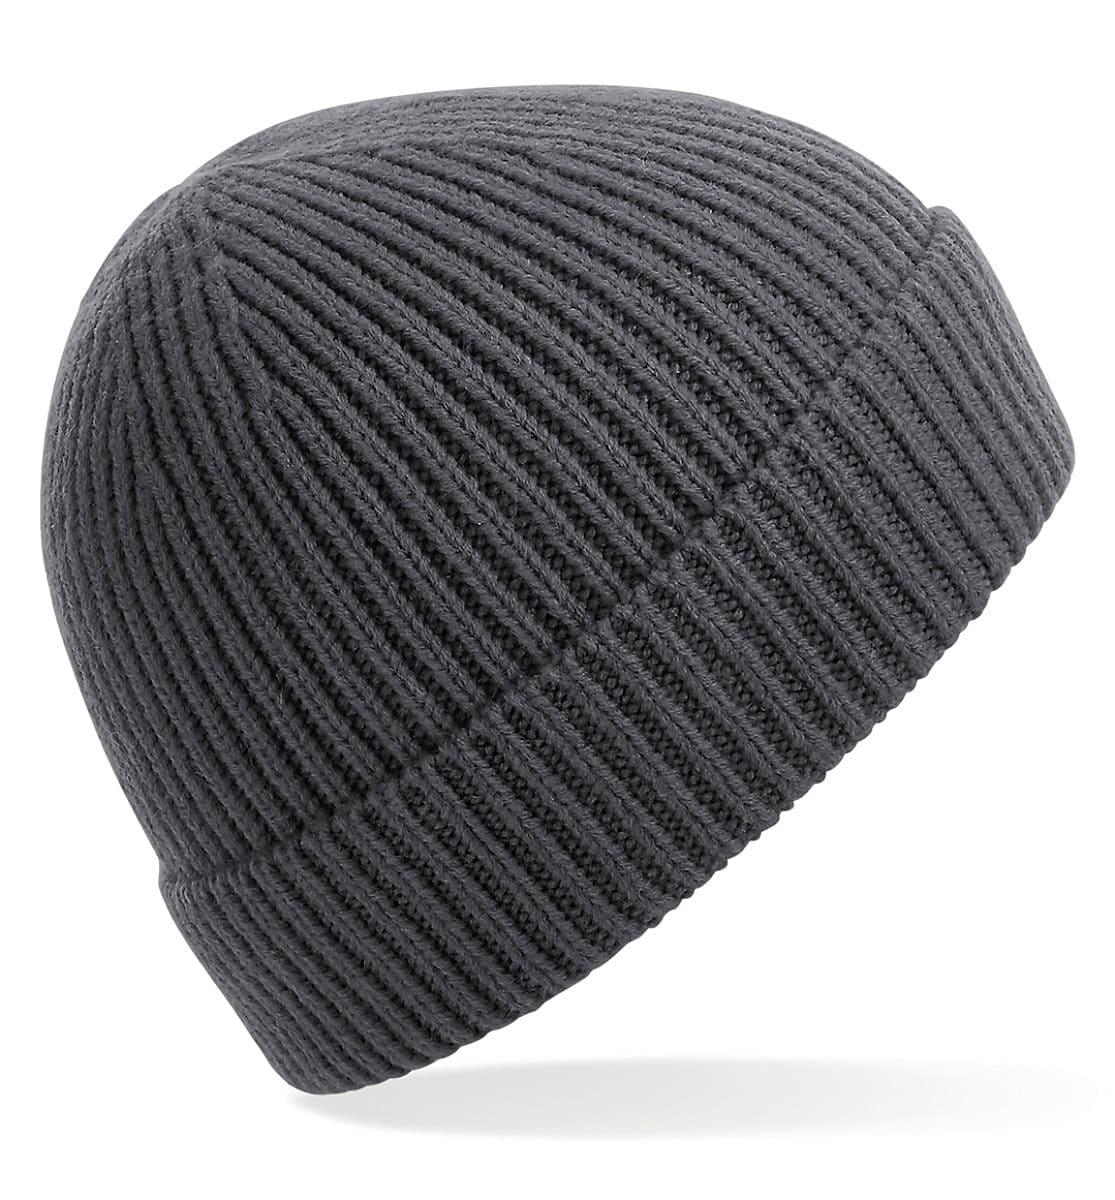 Beechfield Engineered Knit Ribbed Beanie Hat in Graphite (Product Code: B380)